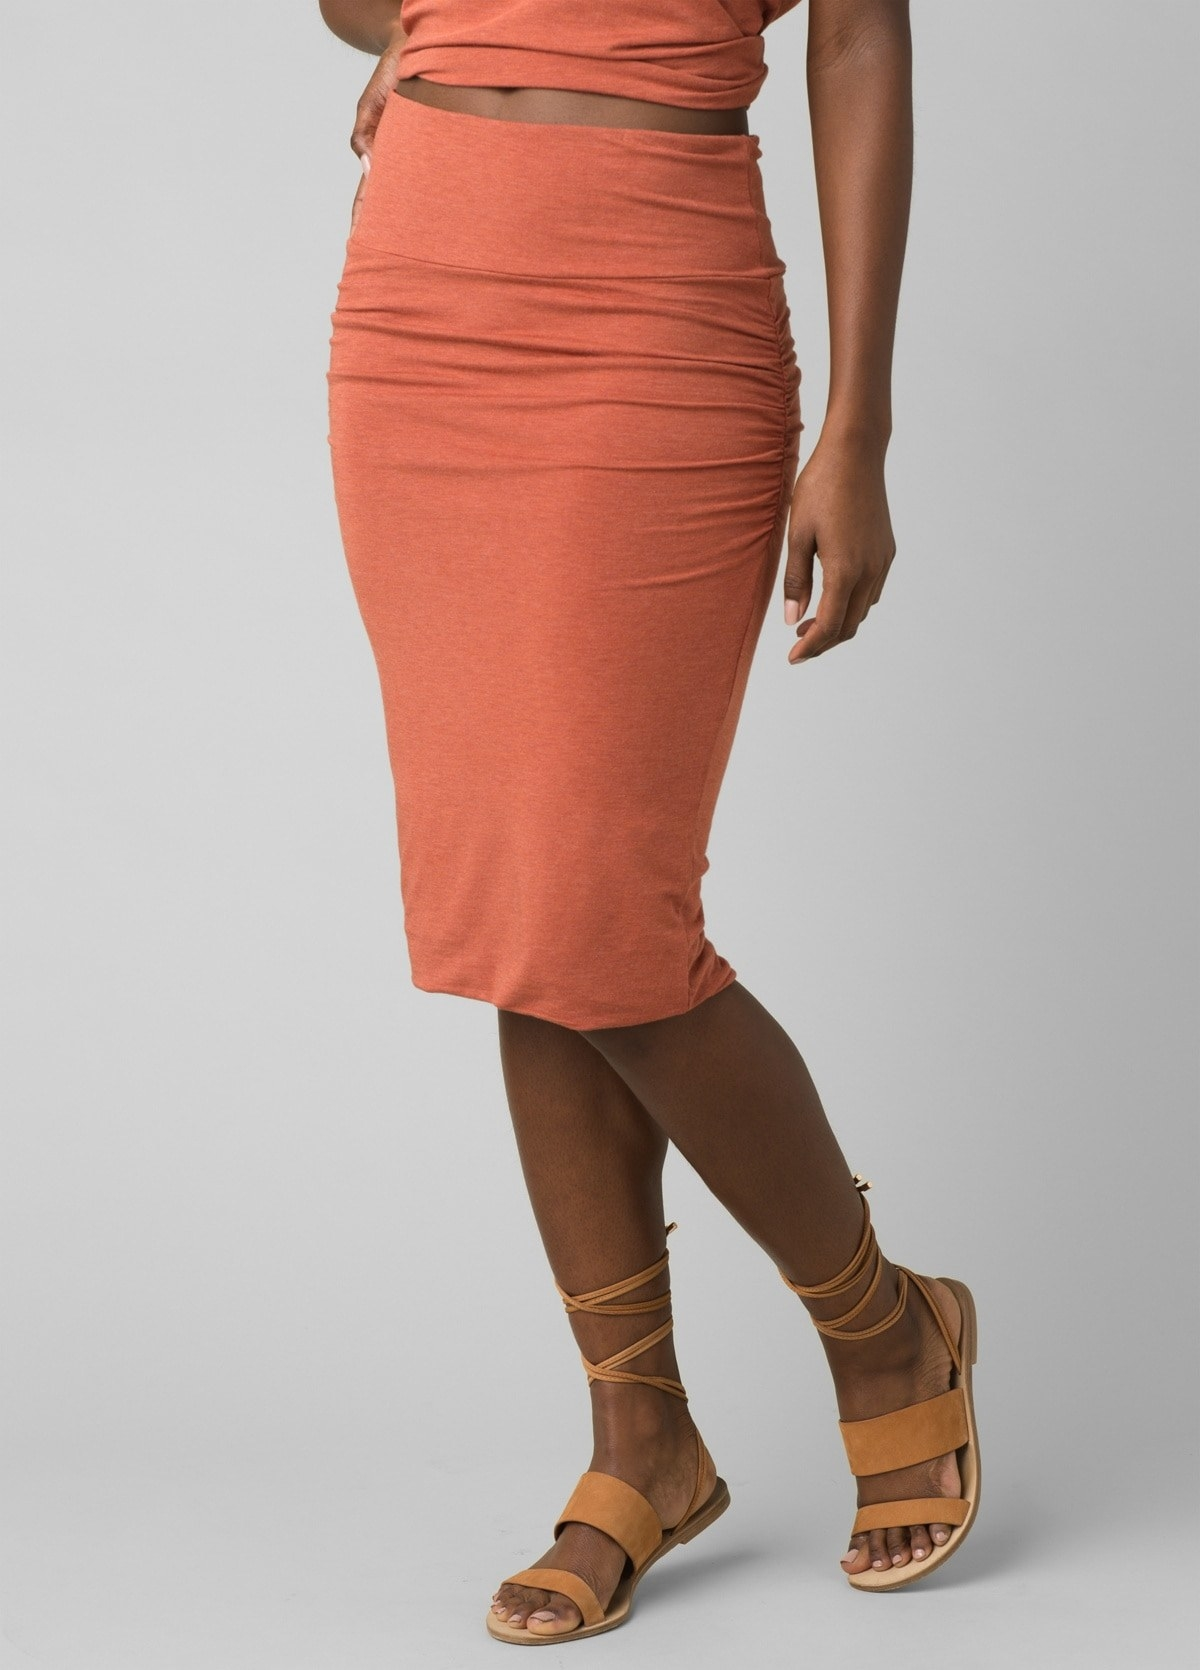 model in tight orange skirt that goes just past the knees